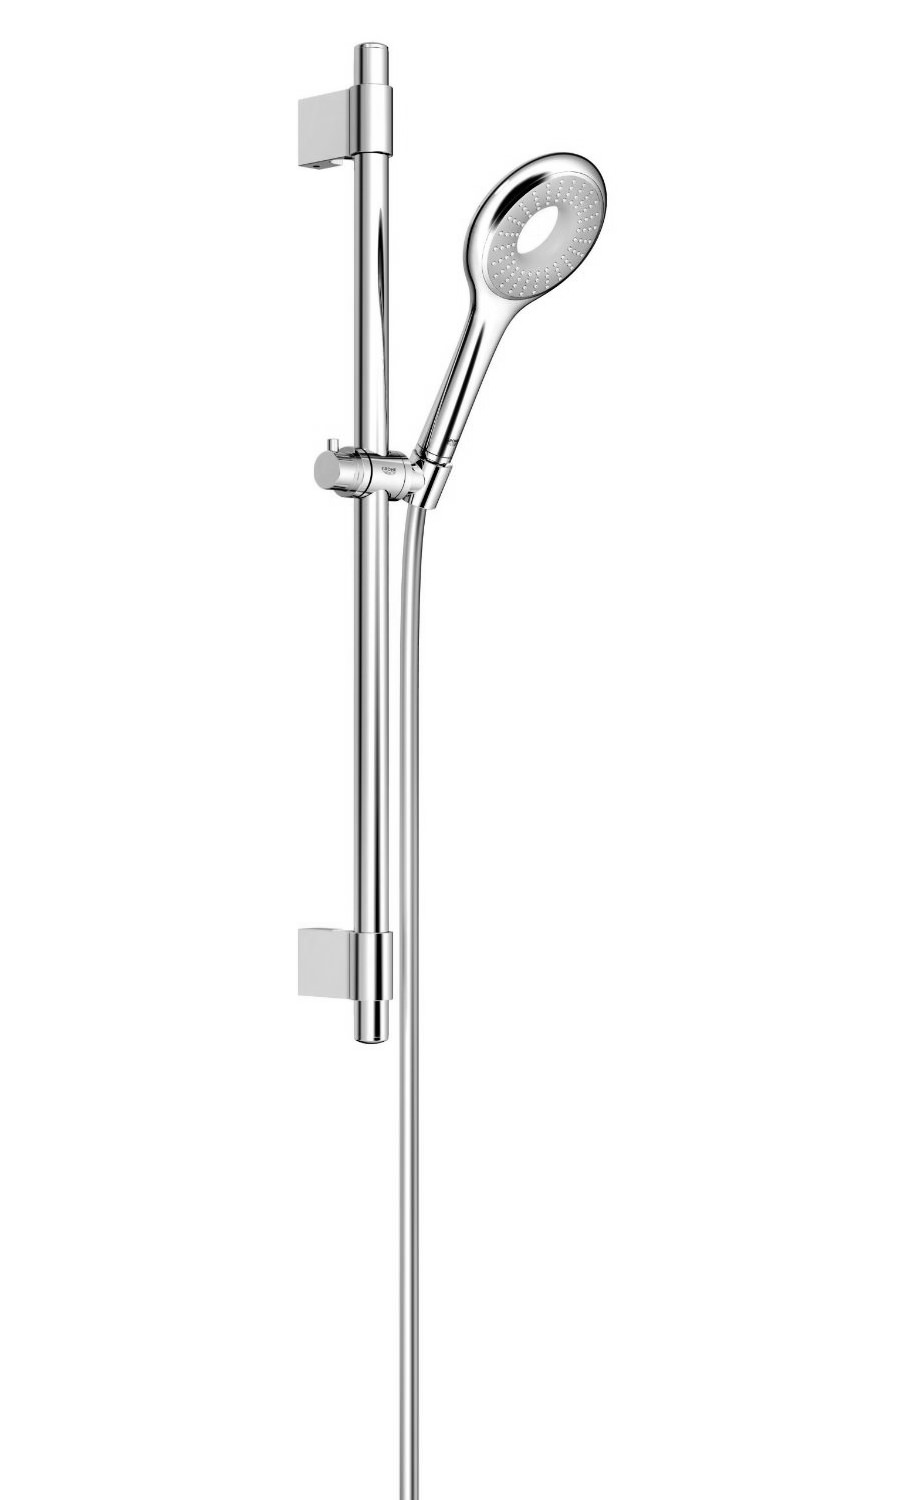 Charming Grohe Shower Tower Images Bathroom And Shower